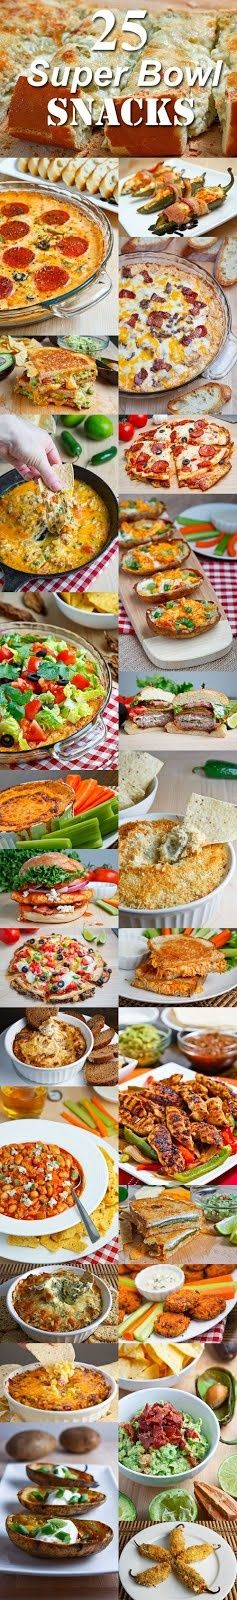 293 Best Football Party Ideas Images On Pinterest